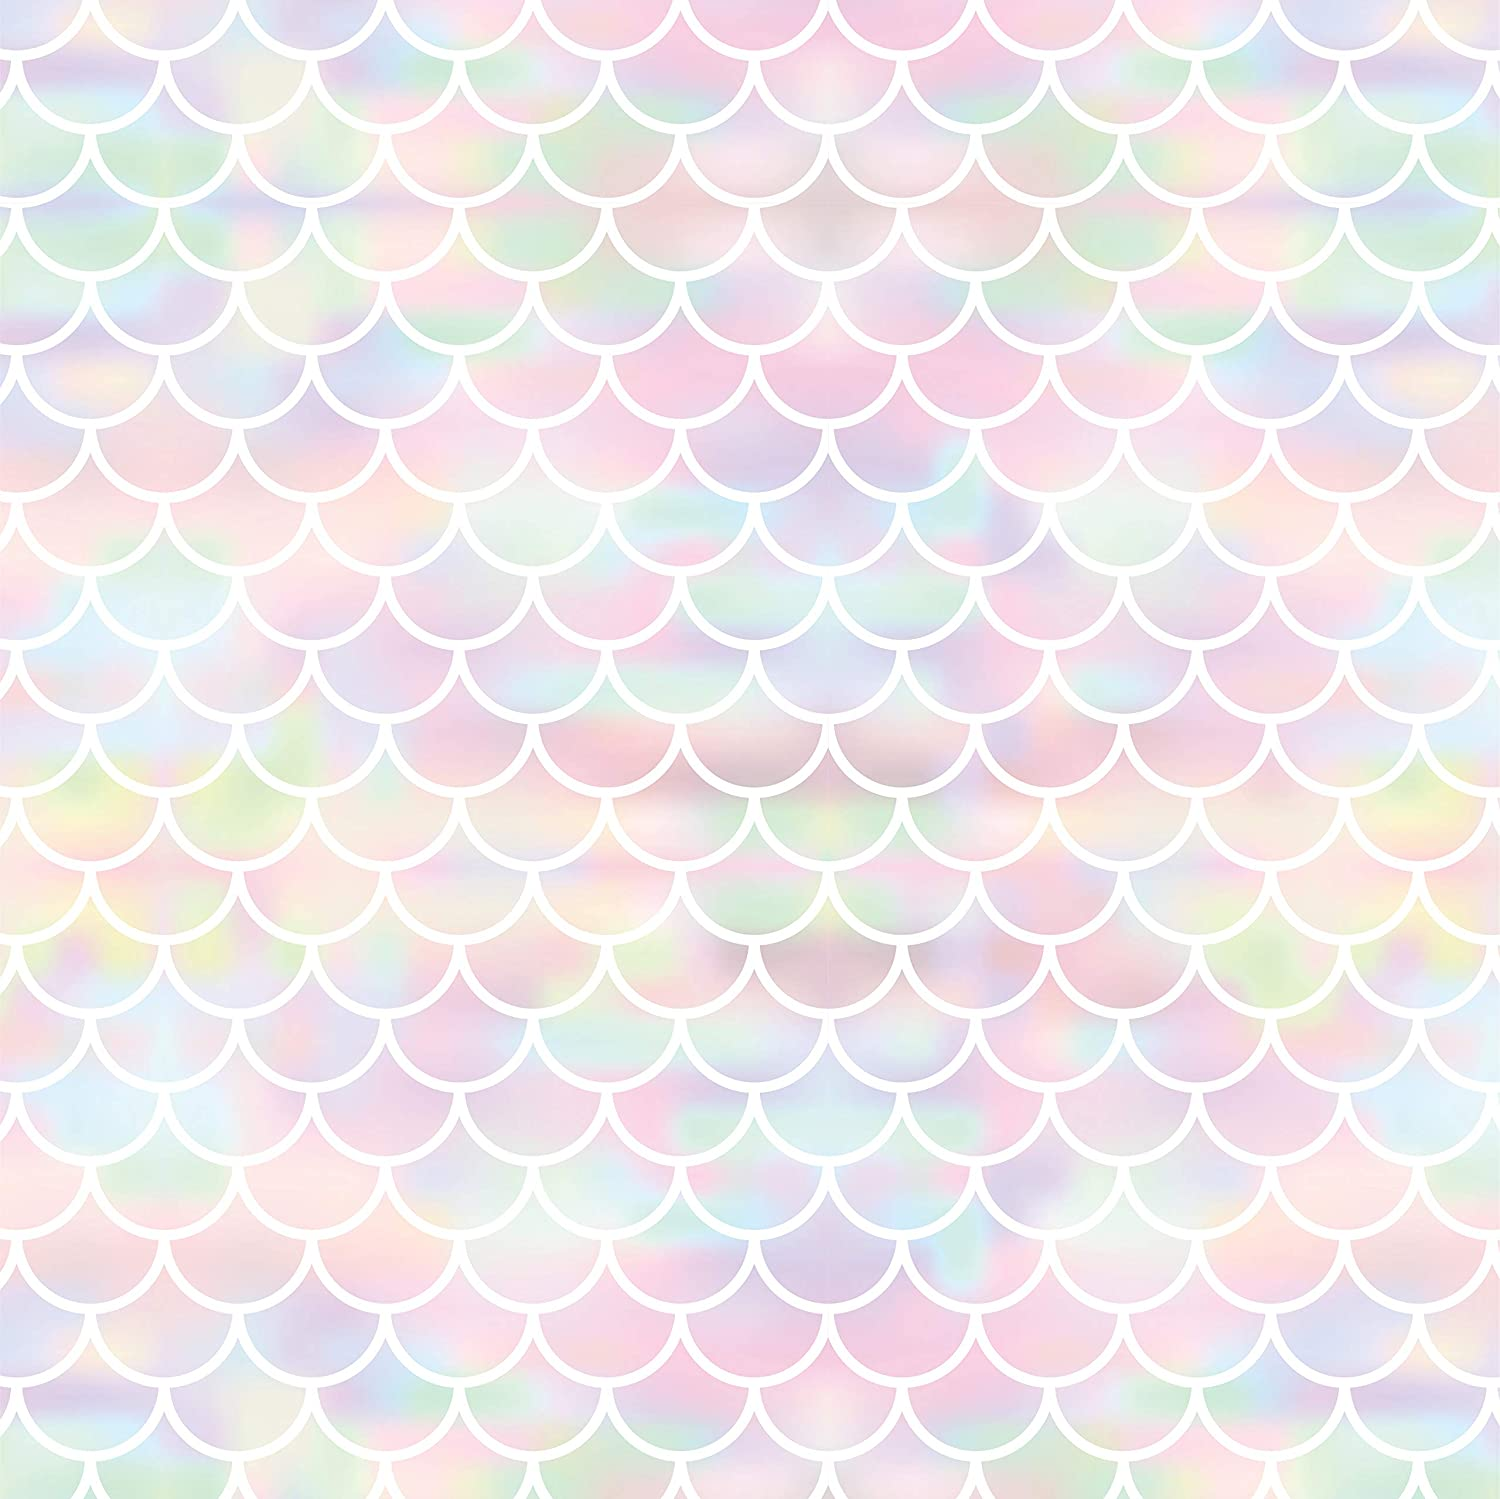 Mermaid Scale Gift Wrap Wrapping Paper - Folded Flat 30 x 20 Inch - 3 Sheets